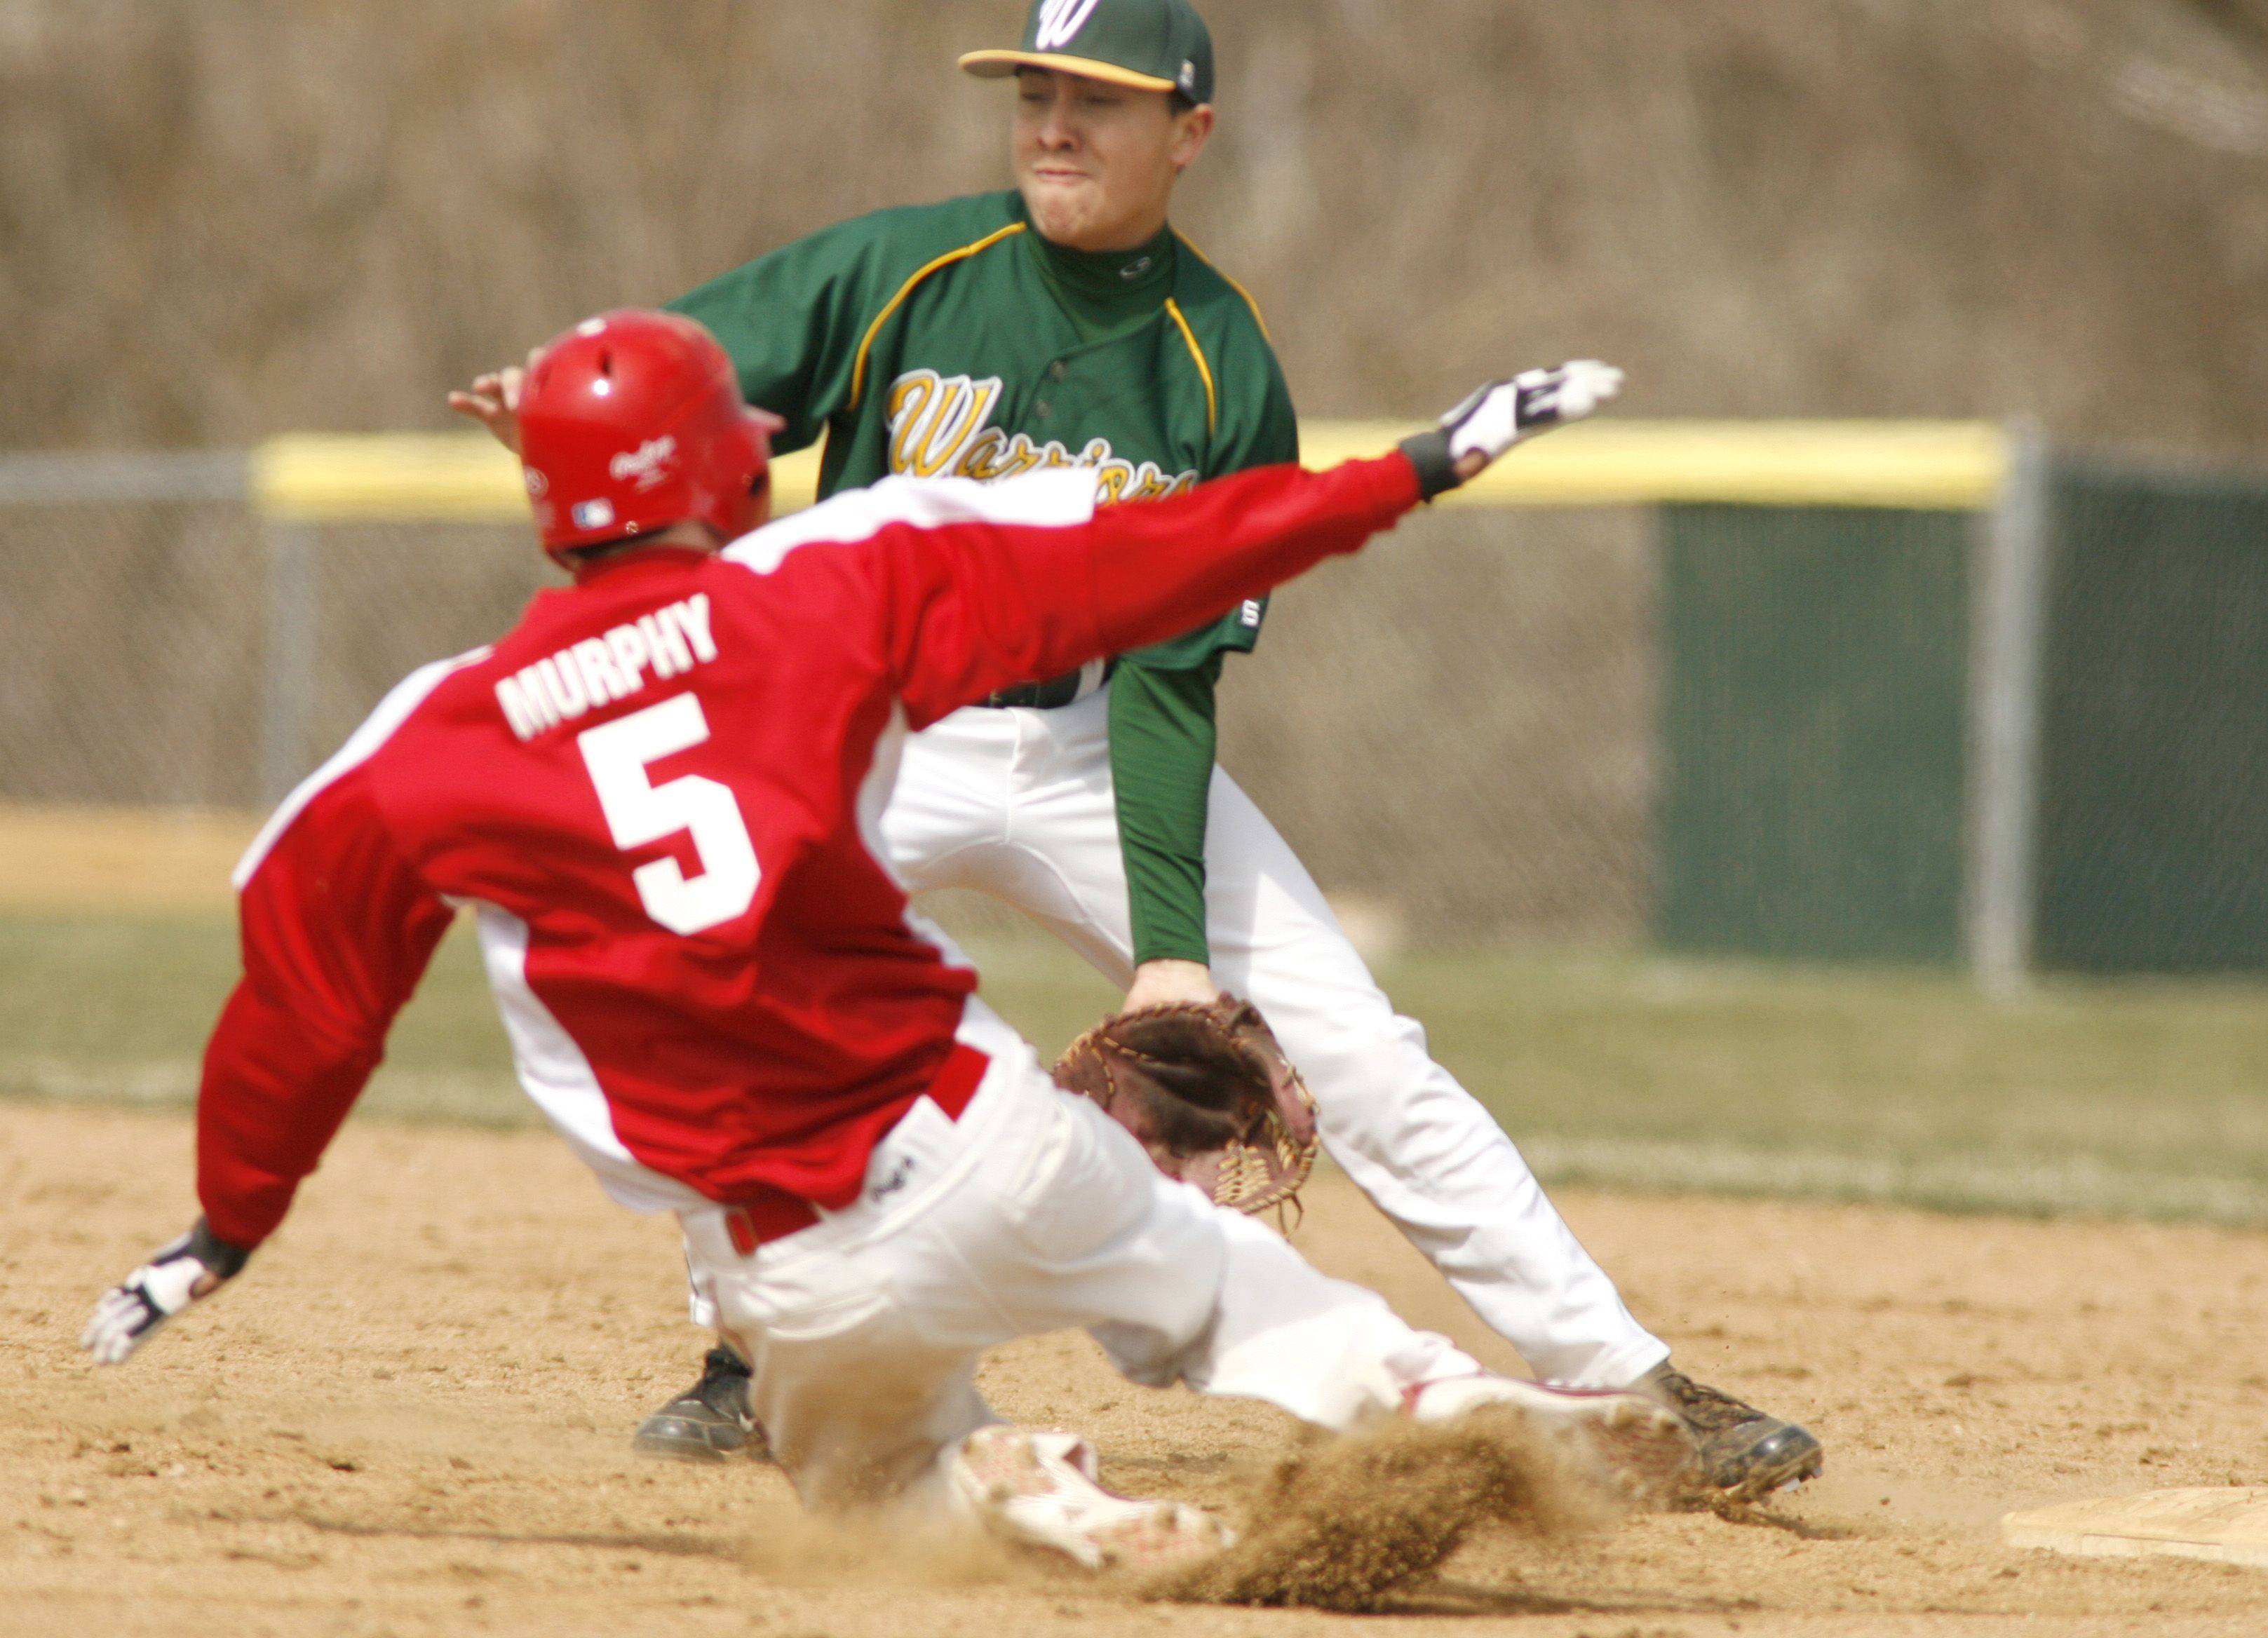 Naperville Central High School's Ross Murphy (5) slides safely into second base against Waubonsie Valley High School's Ryan Vega during boys baseball action at Waubonsie Valley.